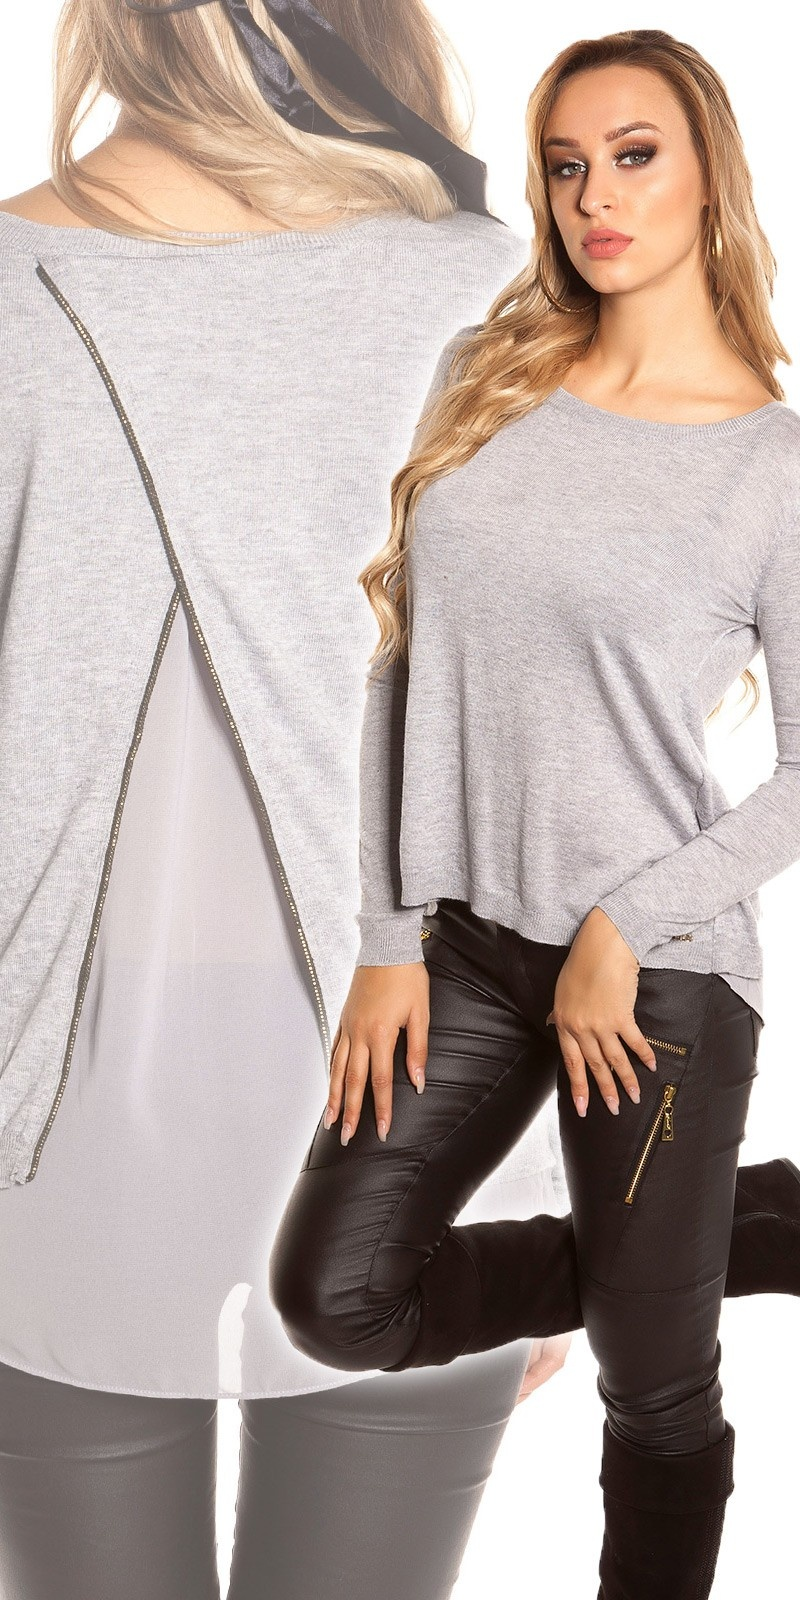 Trendy Koucla 2in1 pullover with mullet cut Grey